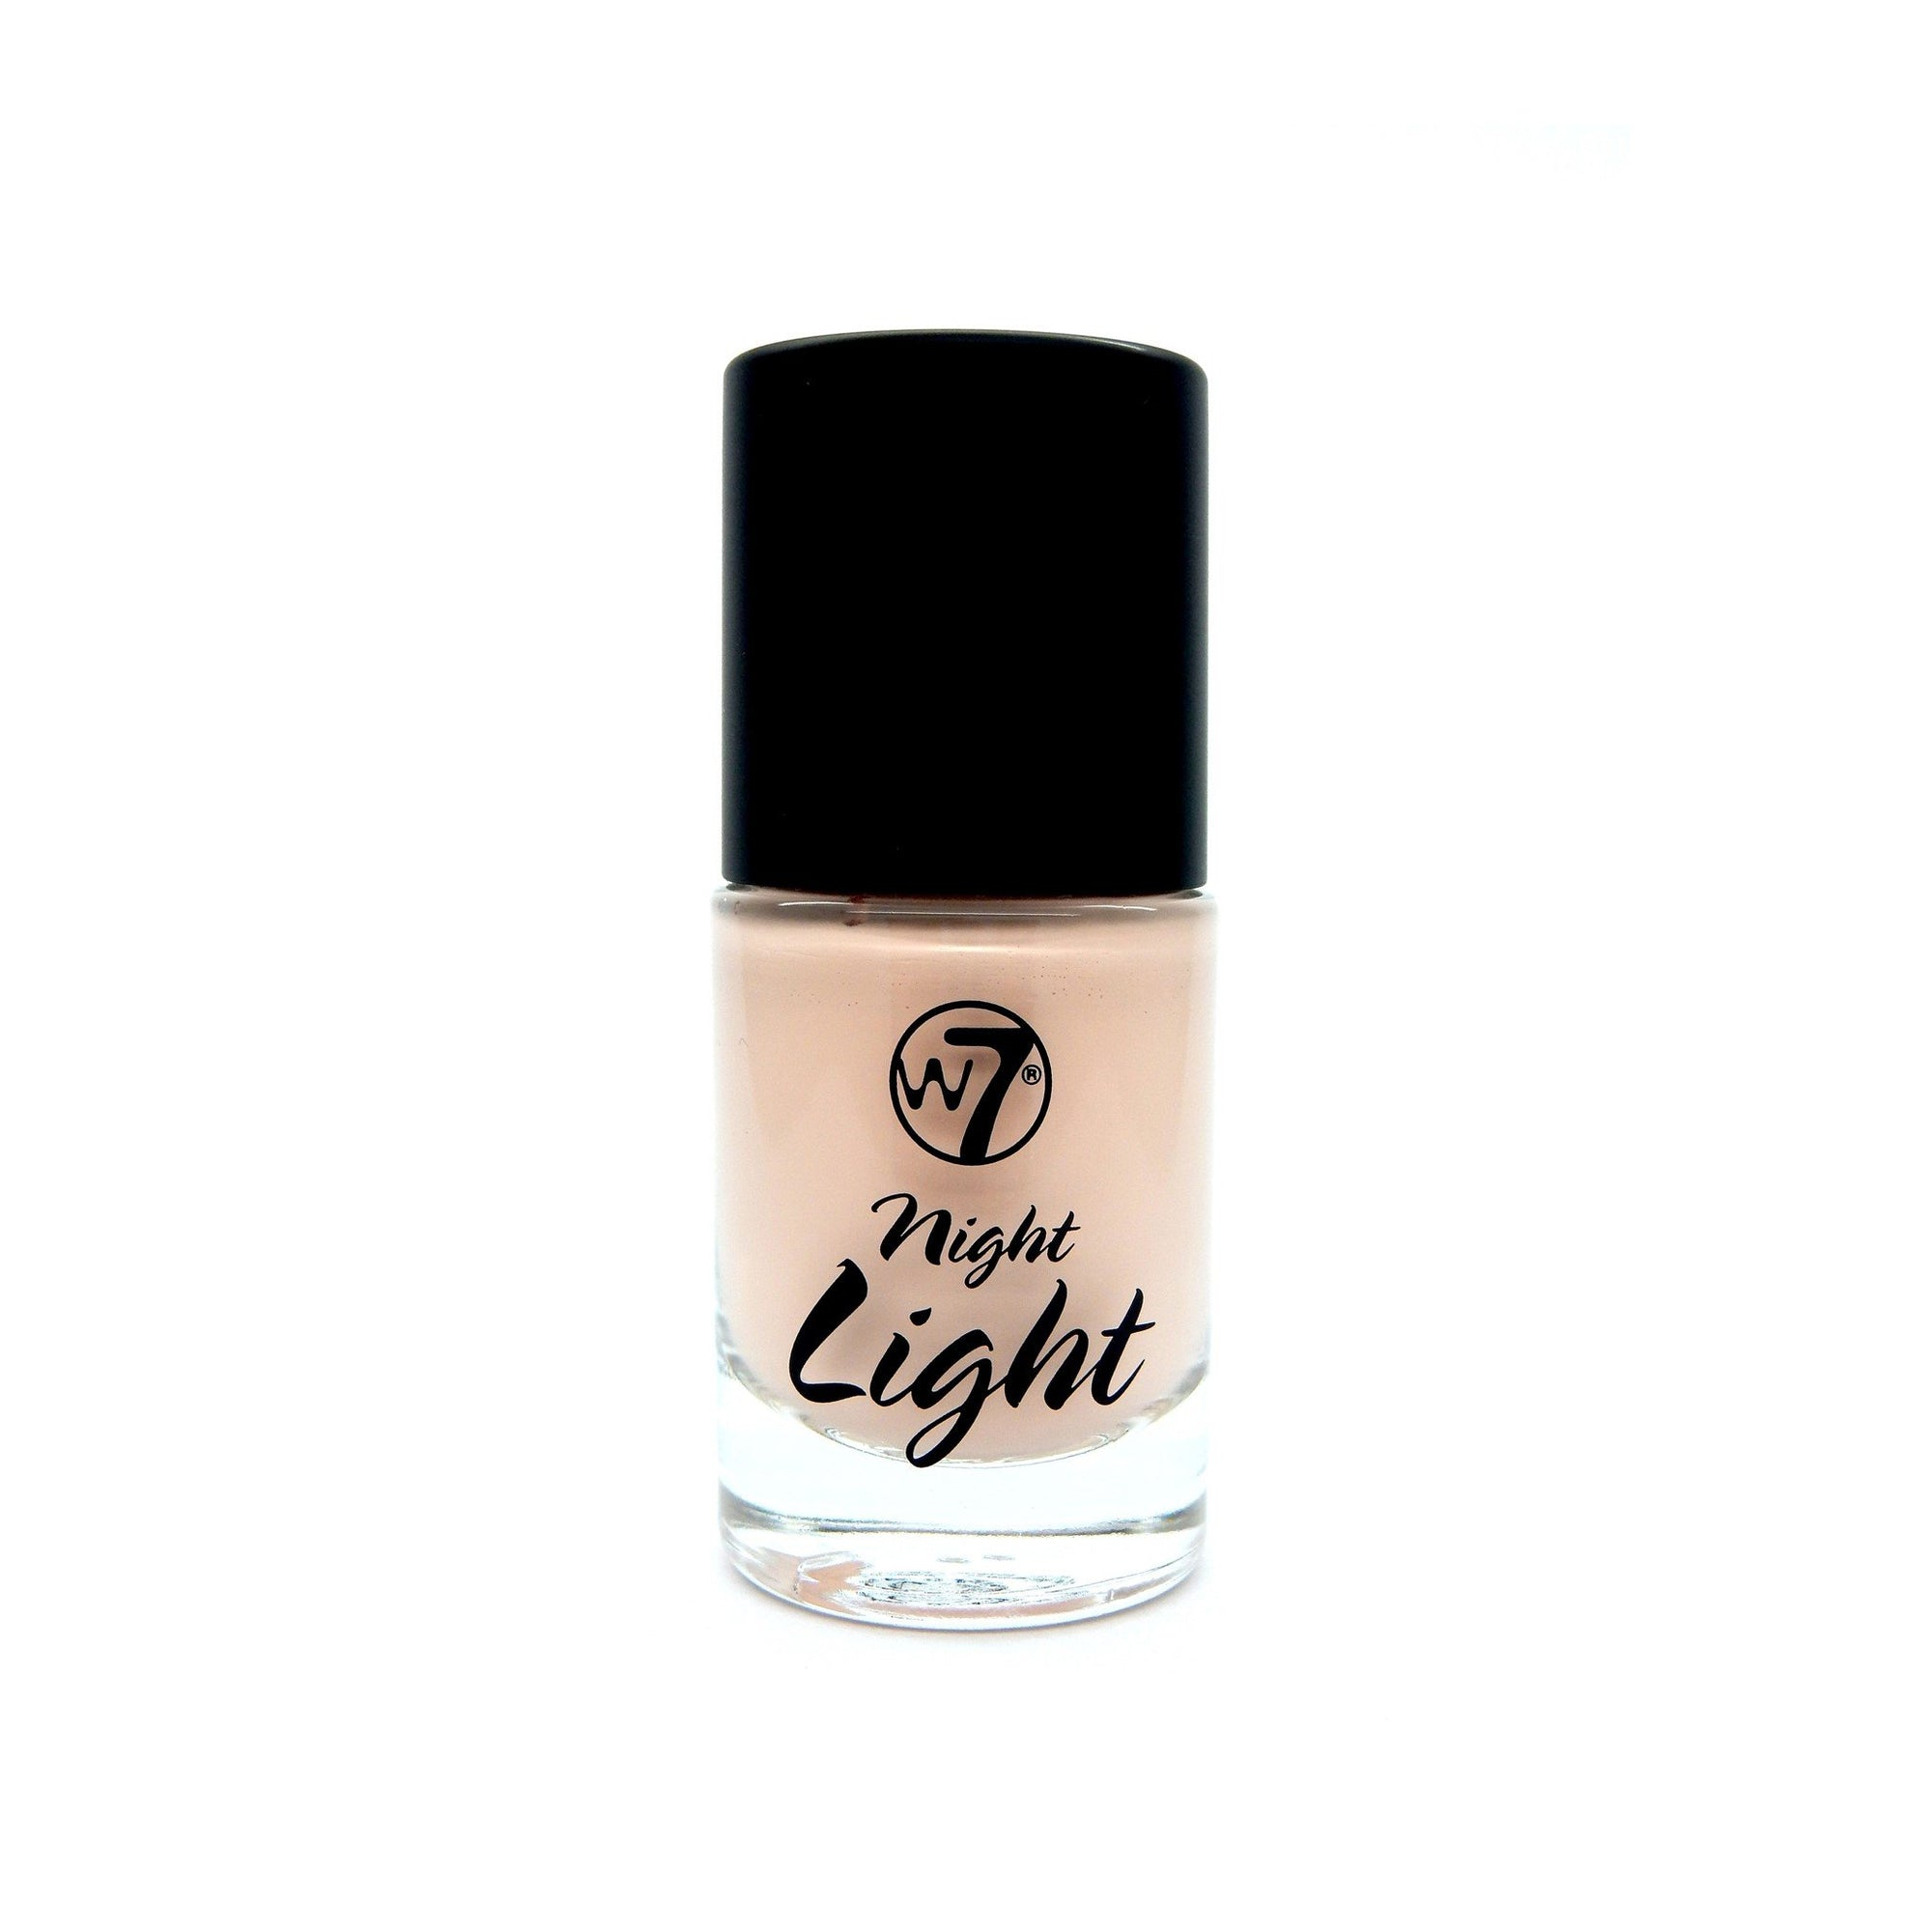 W7 Night Light Matte Highlighter & Illuminator